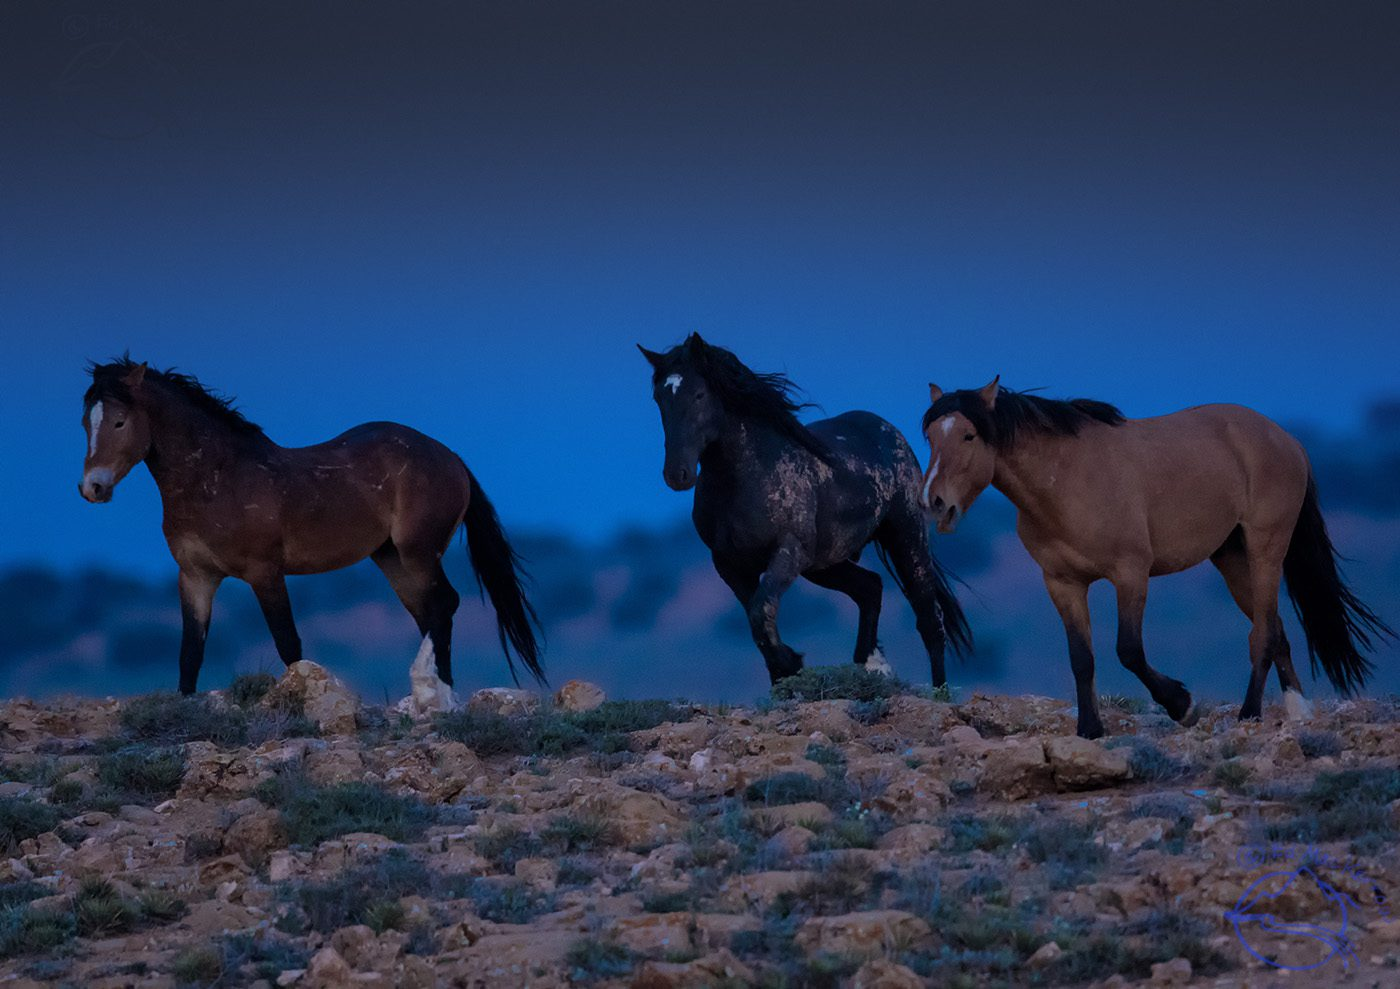 Wild Mustangs come thundering over a rise as night falls.